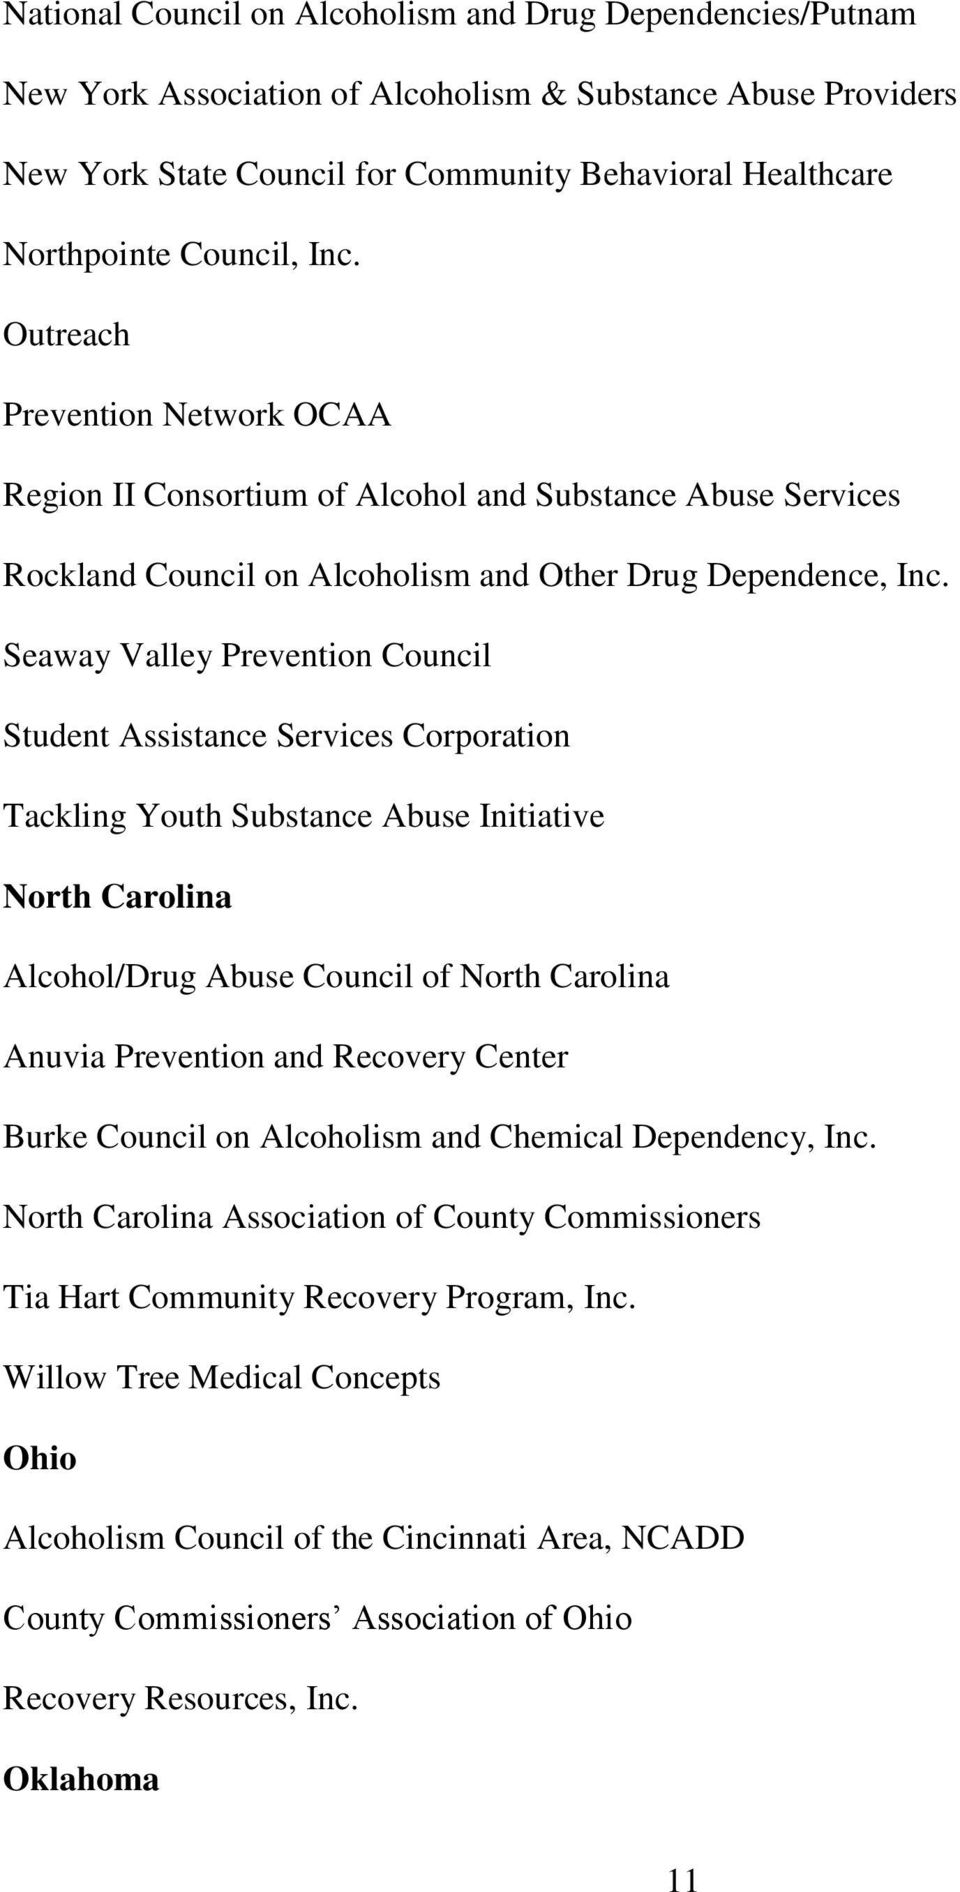 Seaway Valley Prevention Council Student Assistance Services Corporation Tackling Youth Substance Abuse Initiative North Carolina Alcohol/Drug Abuse Council of North Carolina Anuvia Prevention and